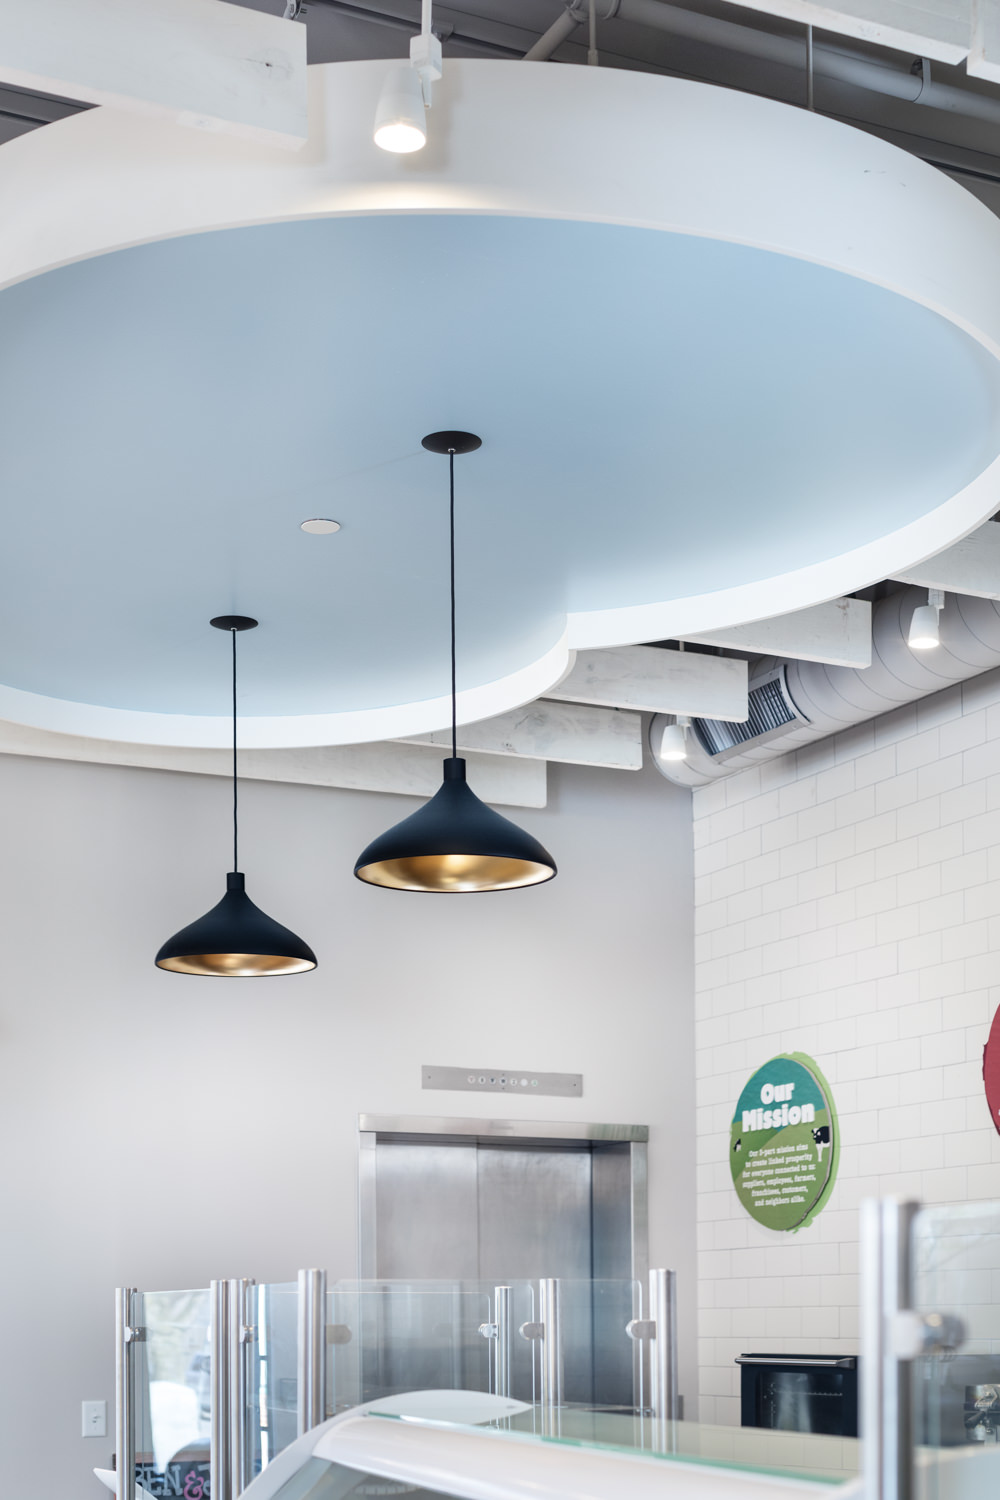 Photo of black pendant lights hung from a cloud shaped bumpout in the cileing of the 2017 renovation of the Ben & Jerry's scoop shop on Church Street in Burlington Vermont taken by photographer Stina Booth